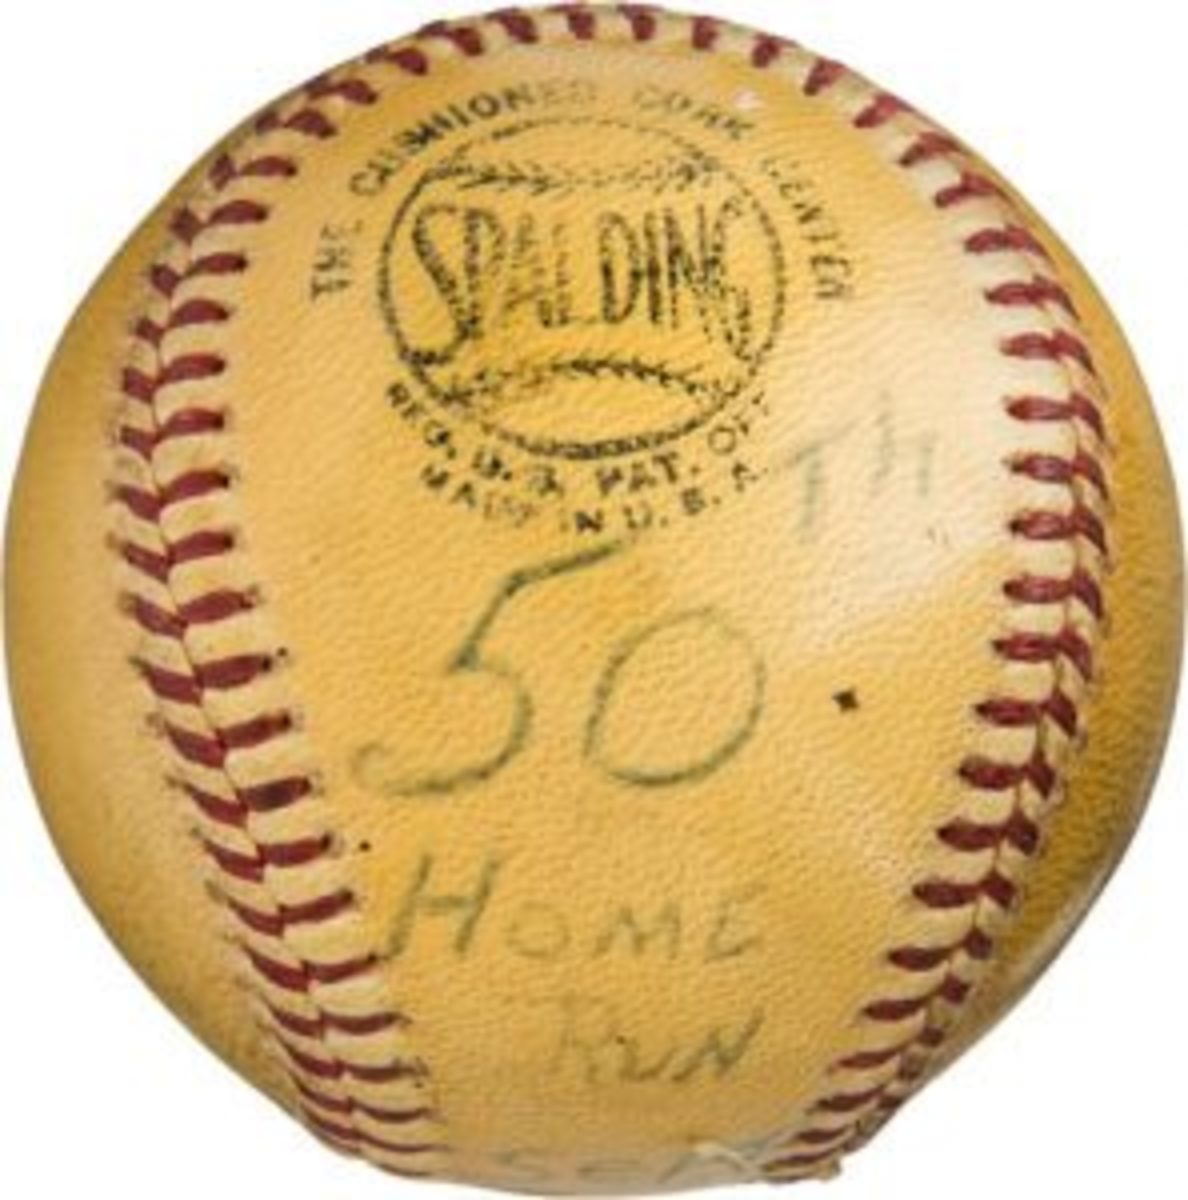 Willie Mays signed home run baseball – No. 50 baseball of 1965 season / No. 503 career. (Photo courtesy Heritage Auctions)